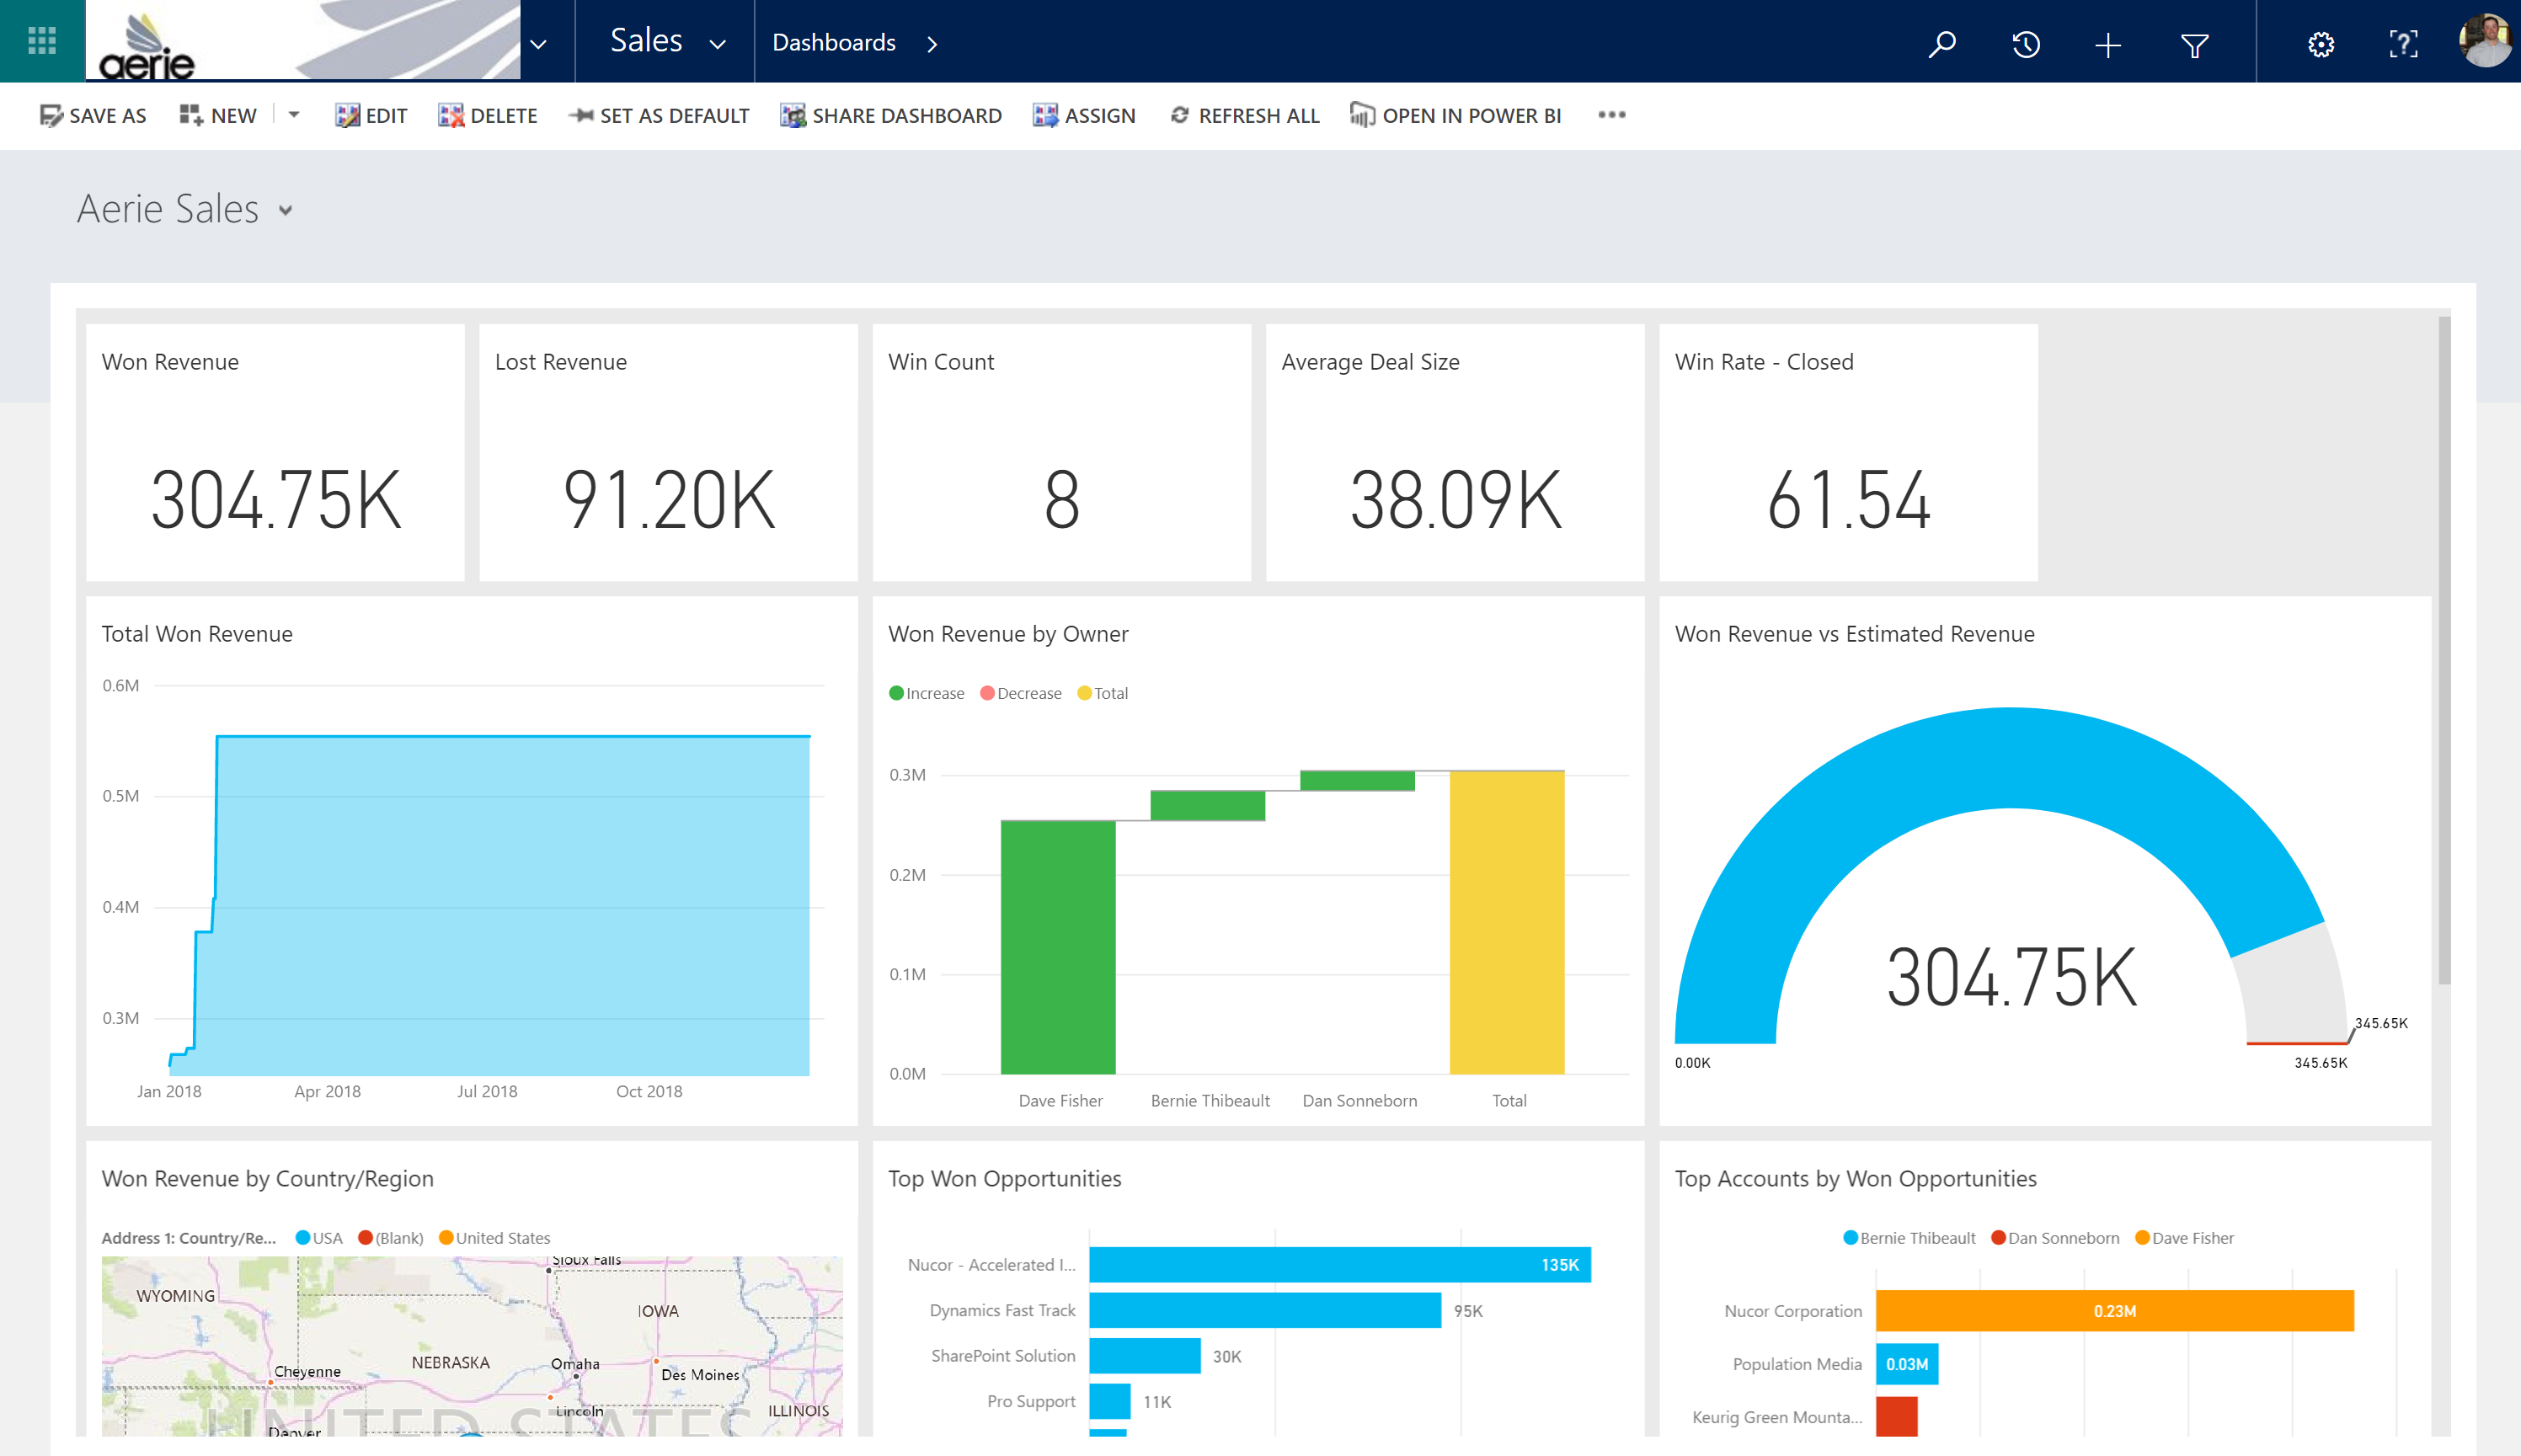 Track Dynamics Data In Real-Time by Adding Power BI Dashboards